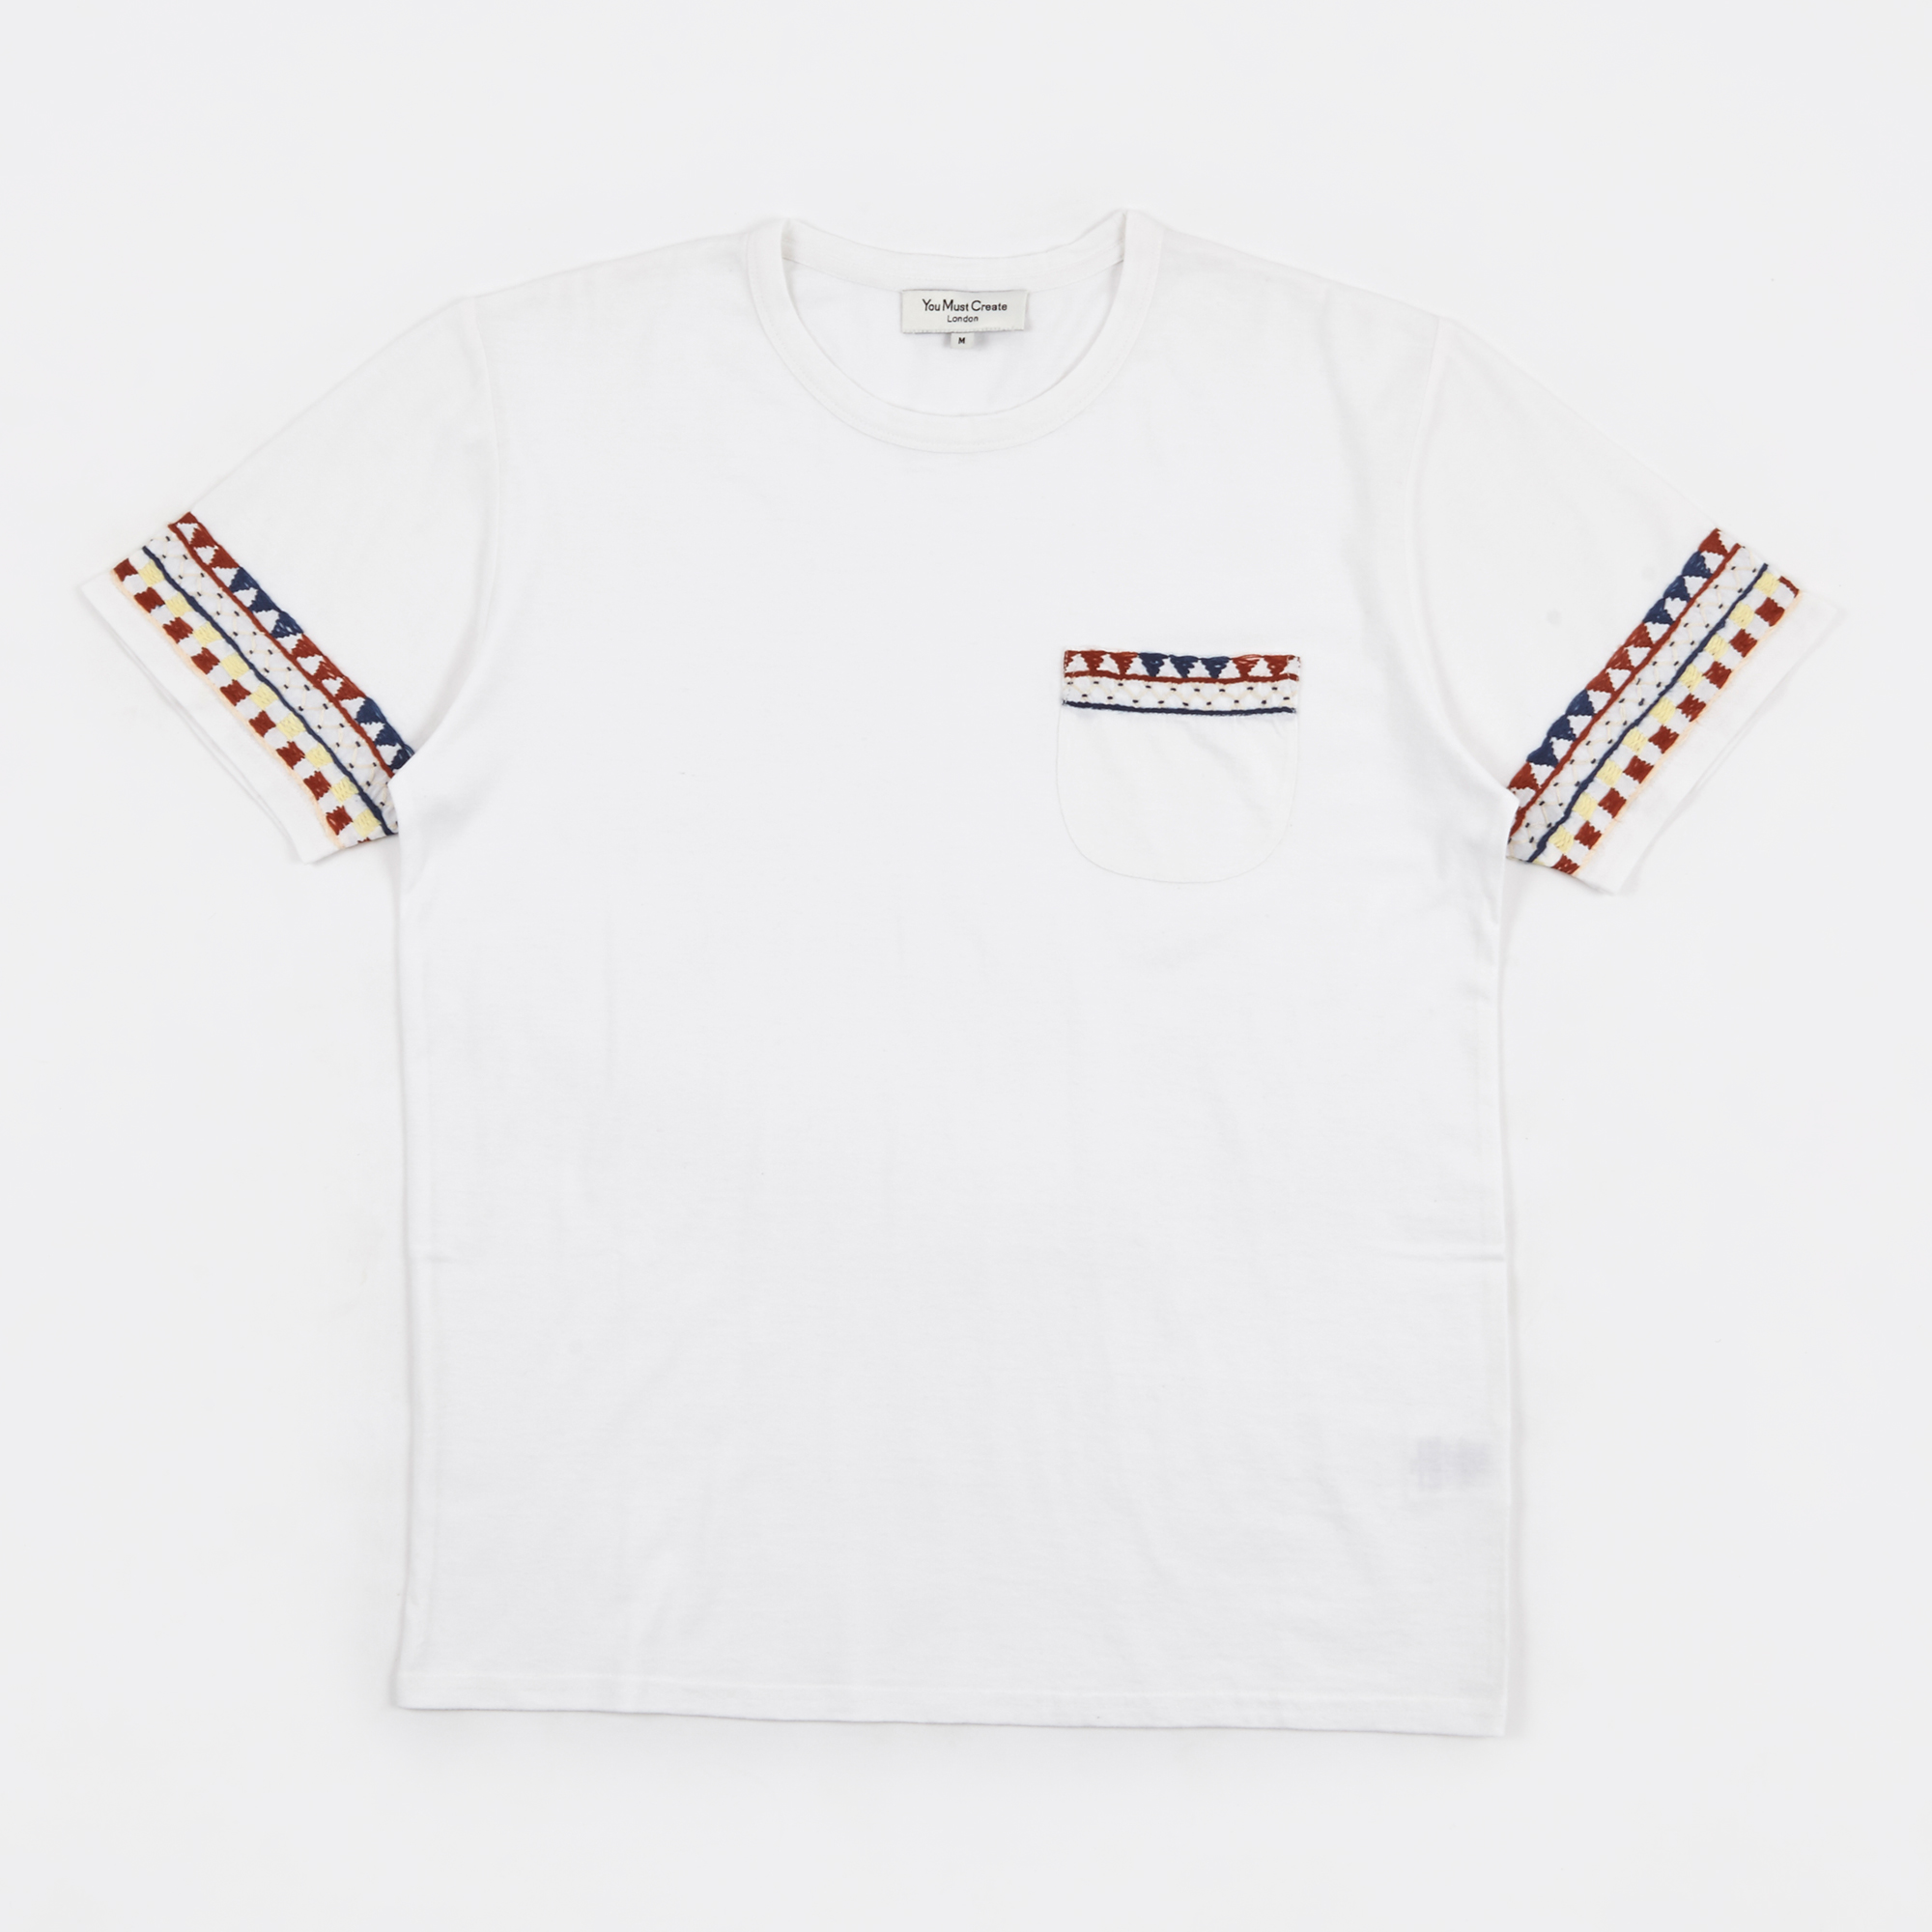 Ymc black t shirt - Wild Ones Pocket T Shirt Embroidery White